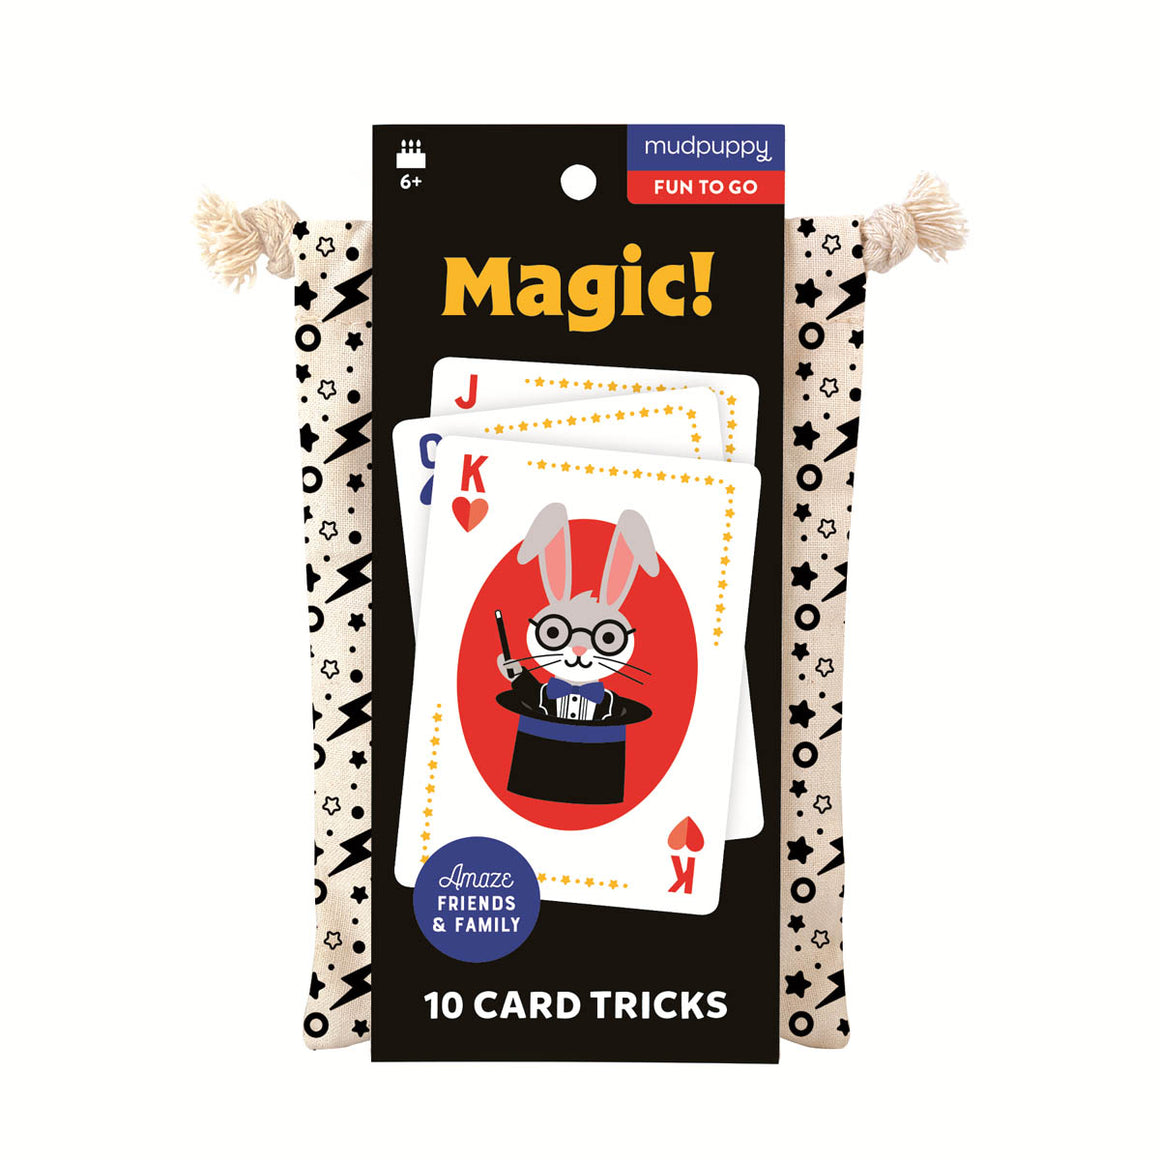 A cloth bag containing a set of magic trick cards for kids. The carboard packaging shows a sample of the cards featuring a cute illustrated rabbit magician popping out of a top hat.